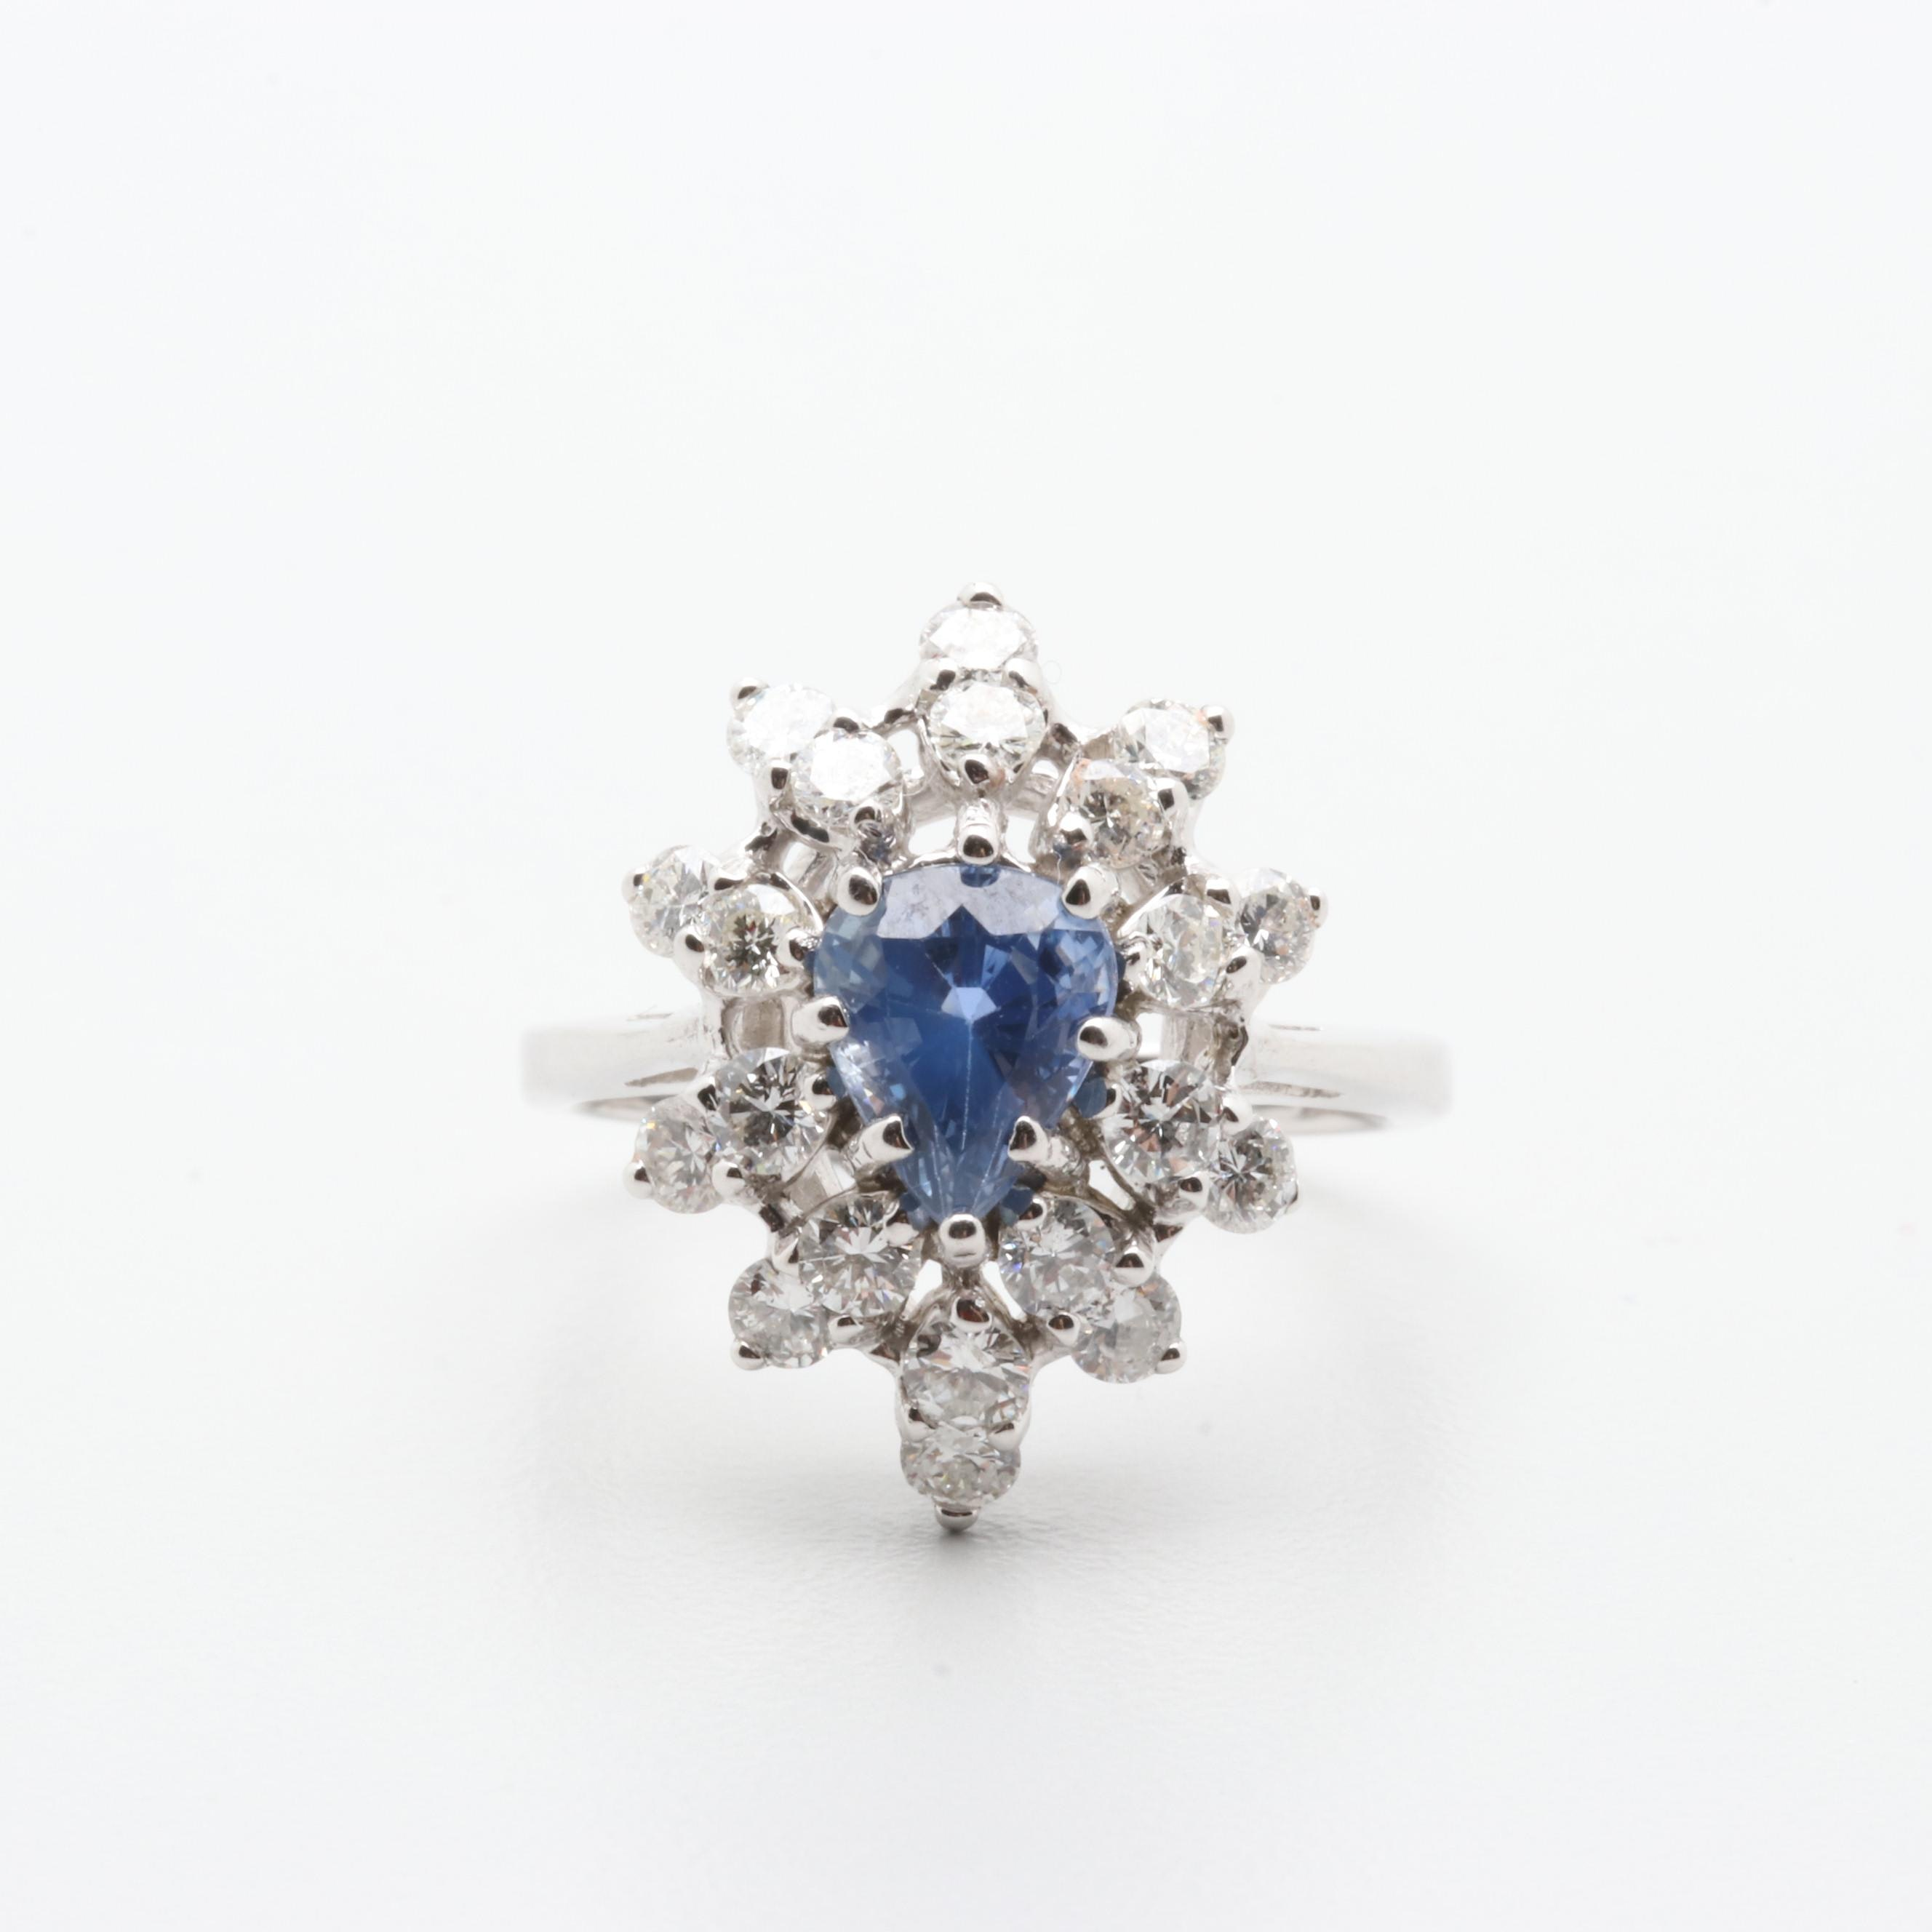 14K White Gold 1.84 CTW Blue Sapphire and 1.25 CTW Diamond Ring with AGL Report